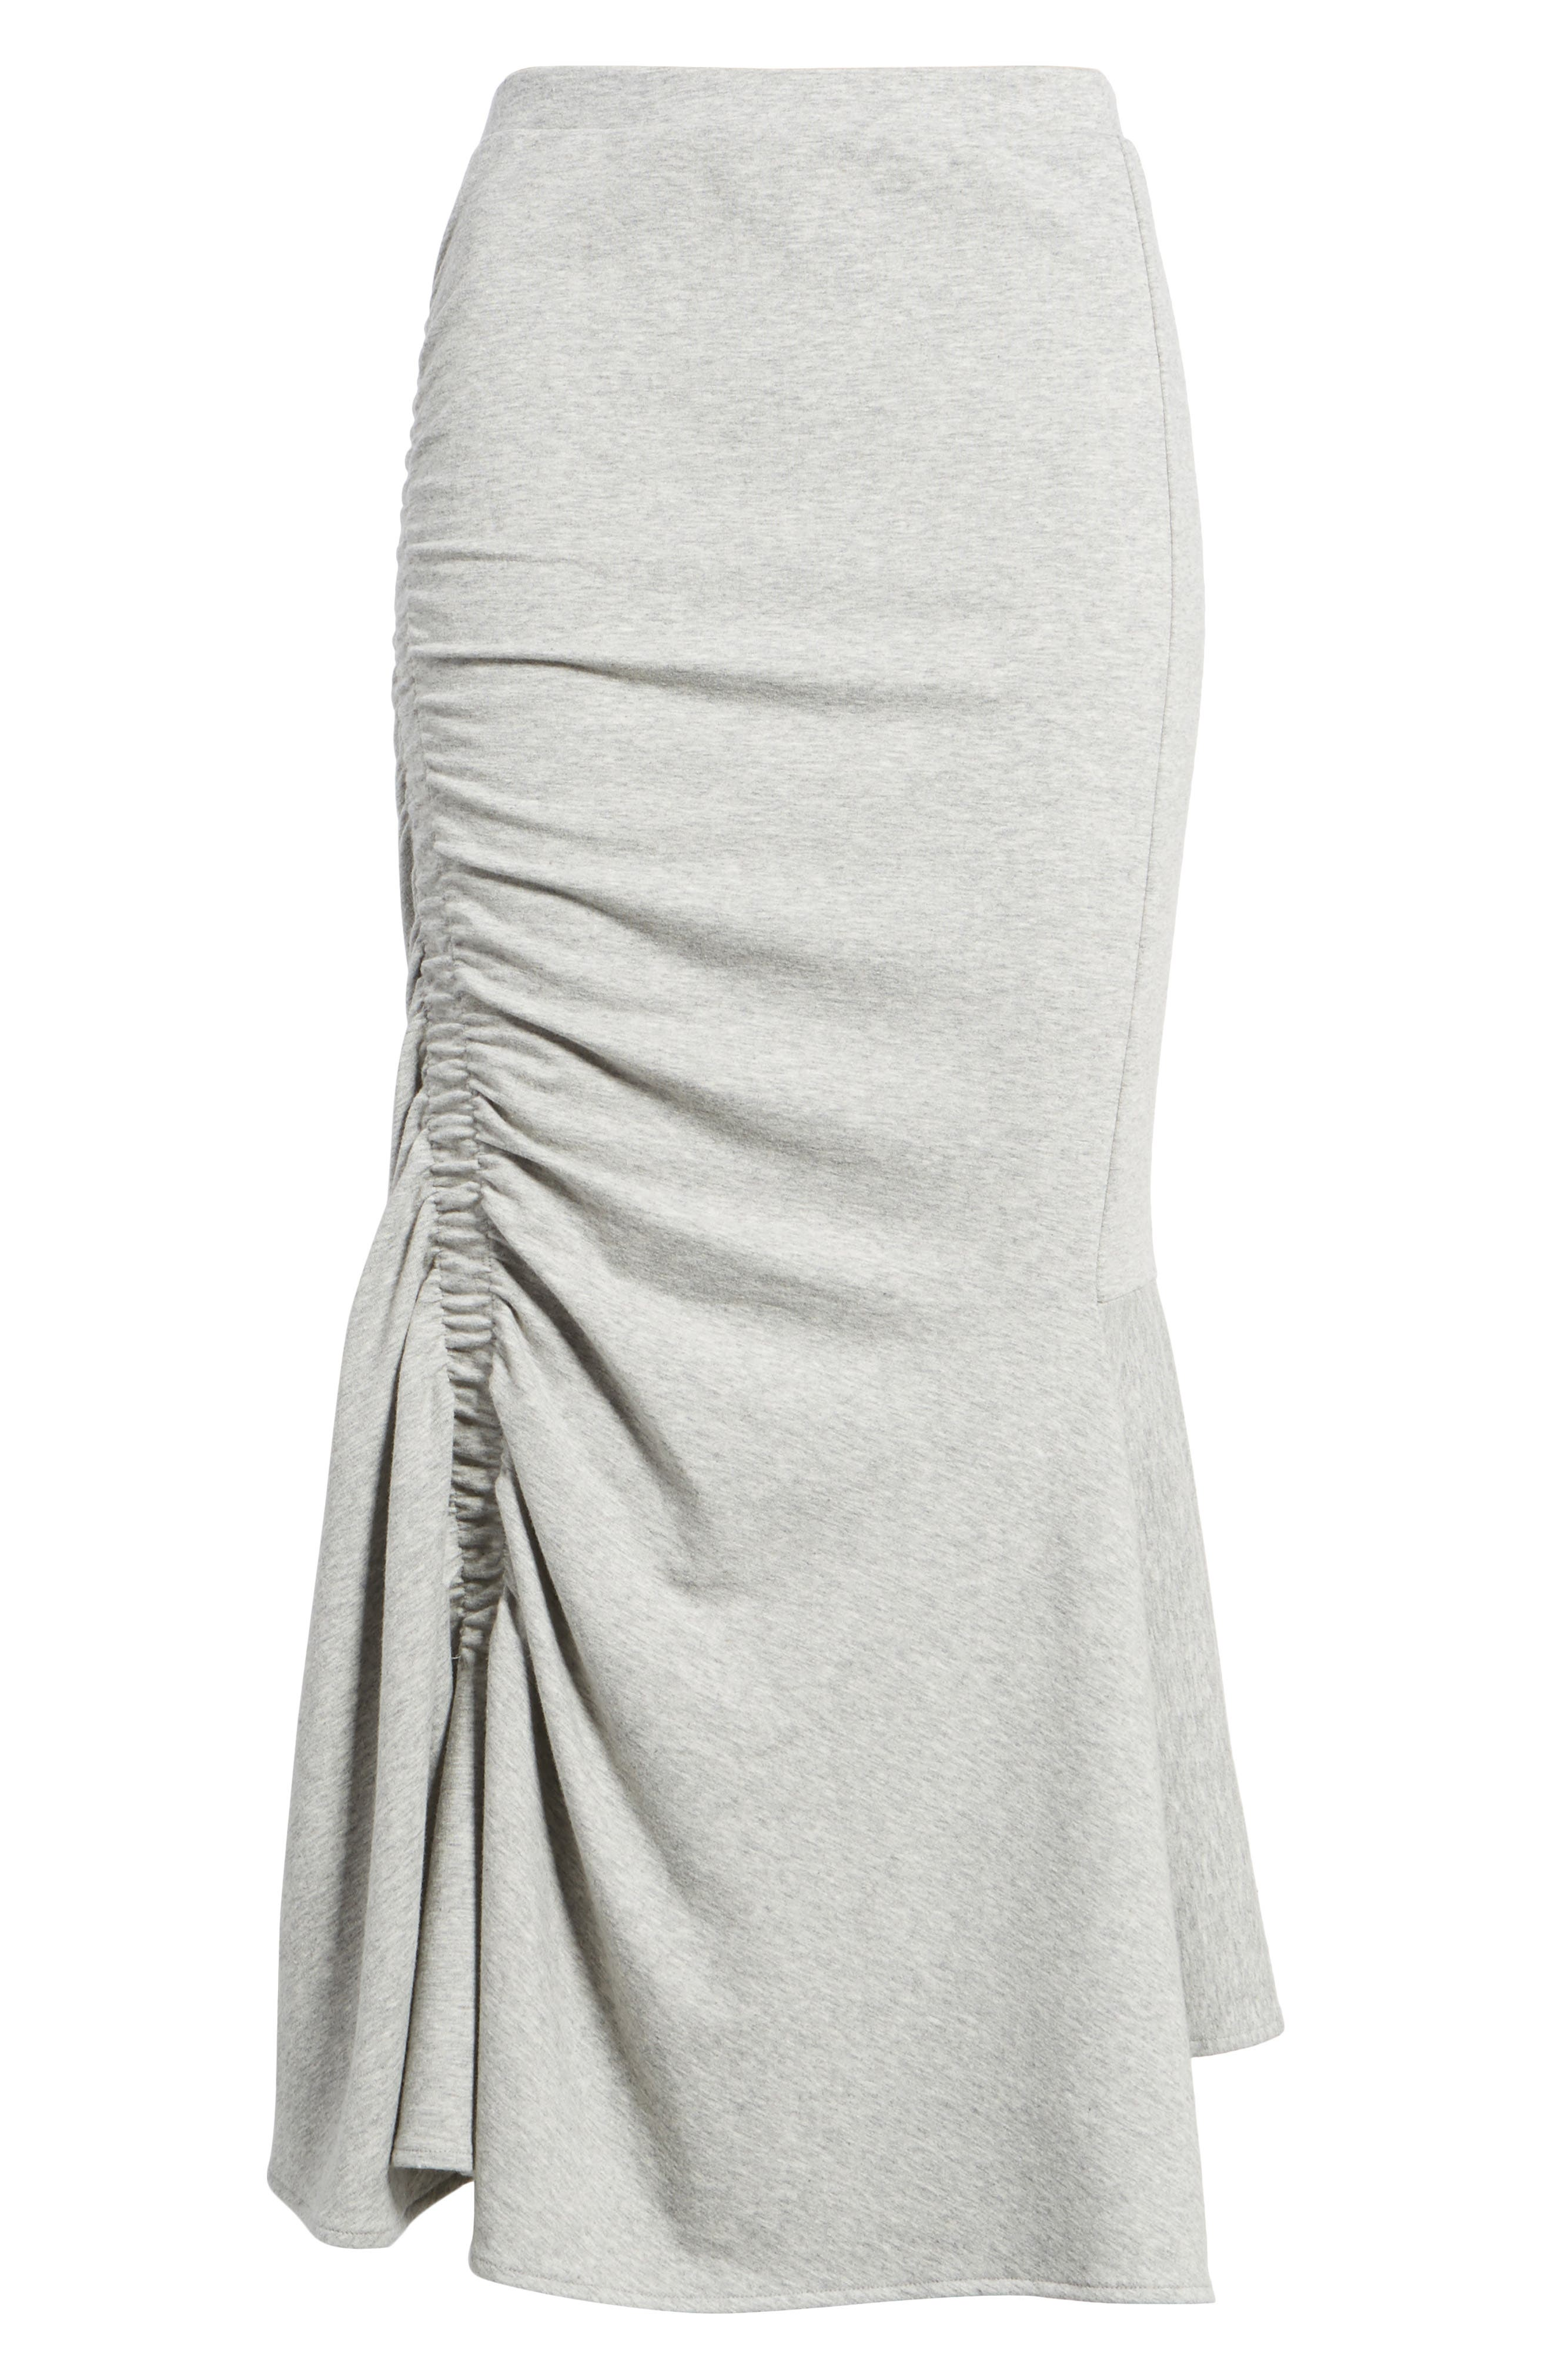 Ruched Fluted Midi Skirt,                             Alternate thumbnail 6, color,                             Grey Heather